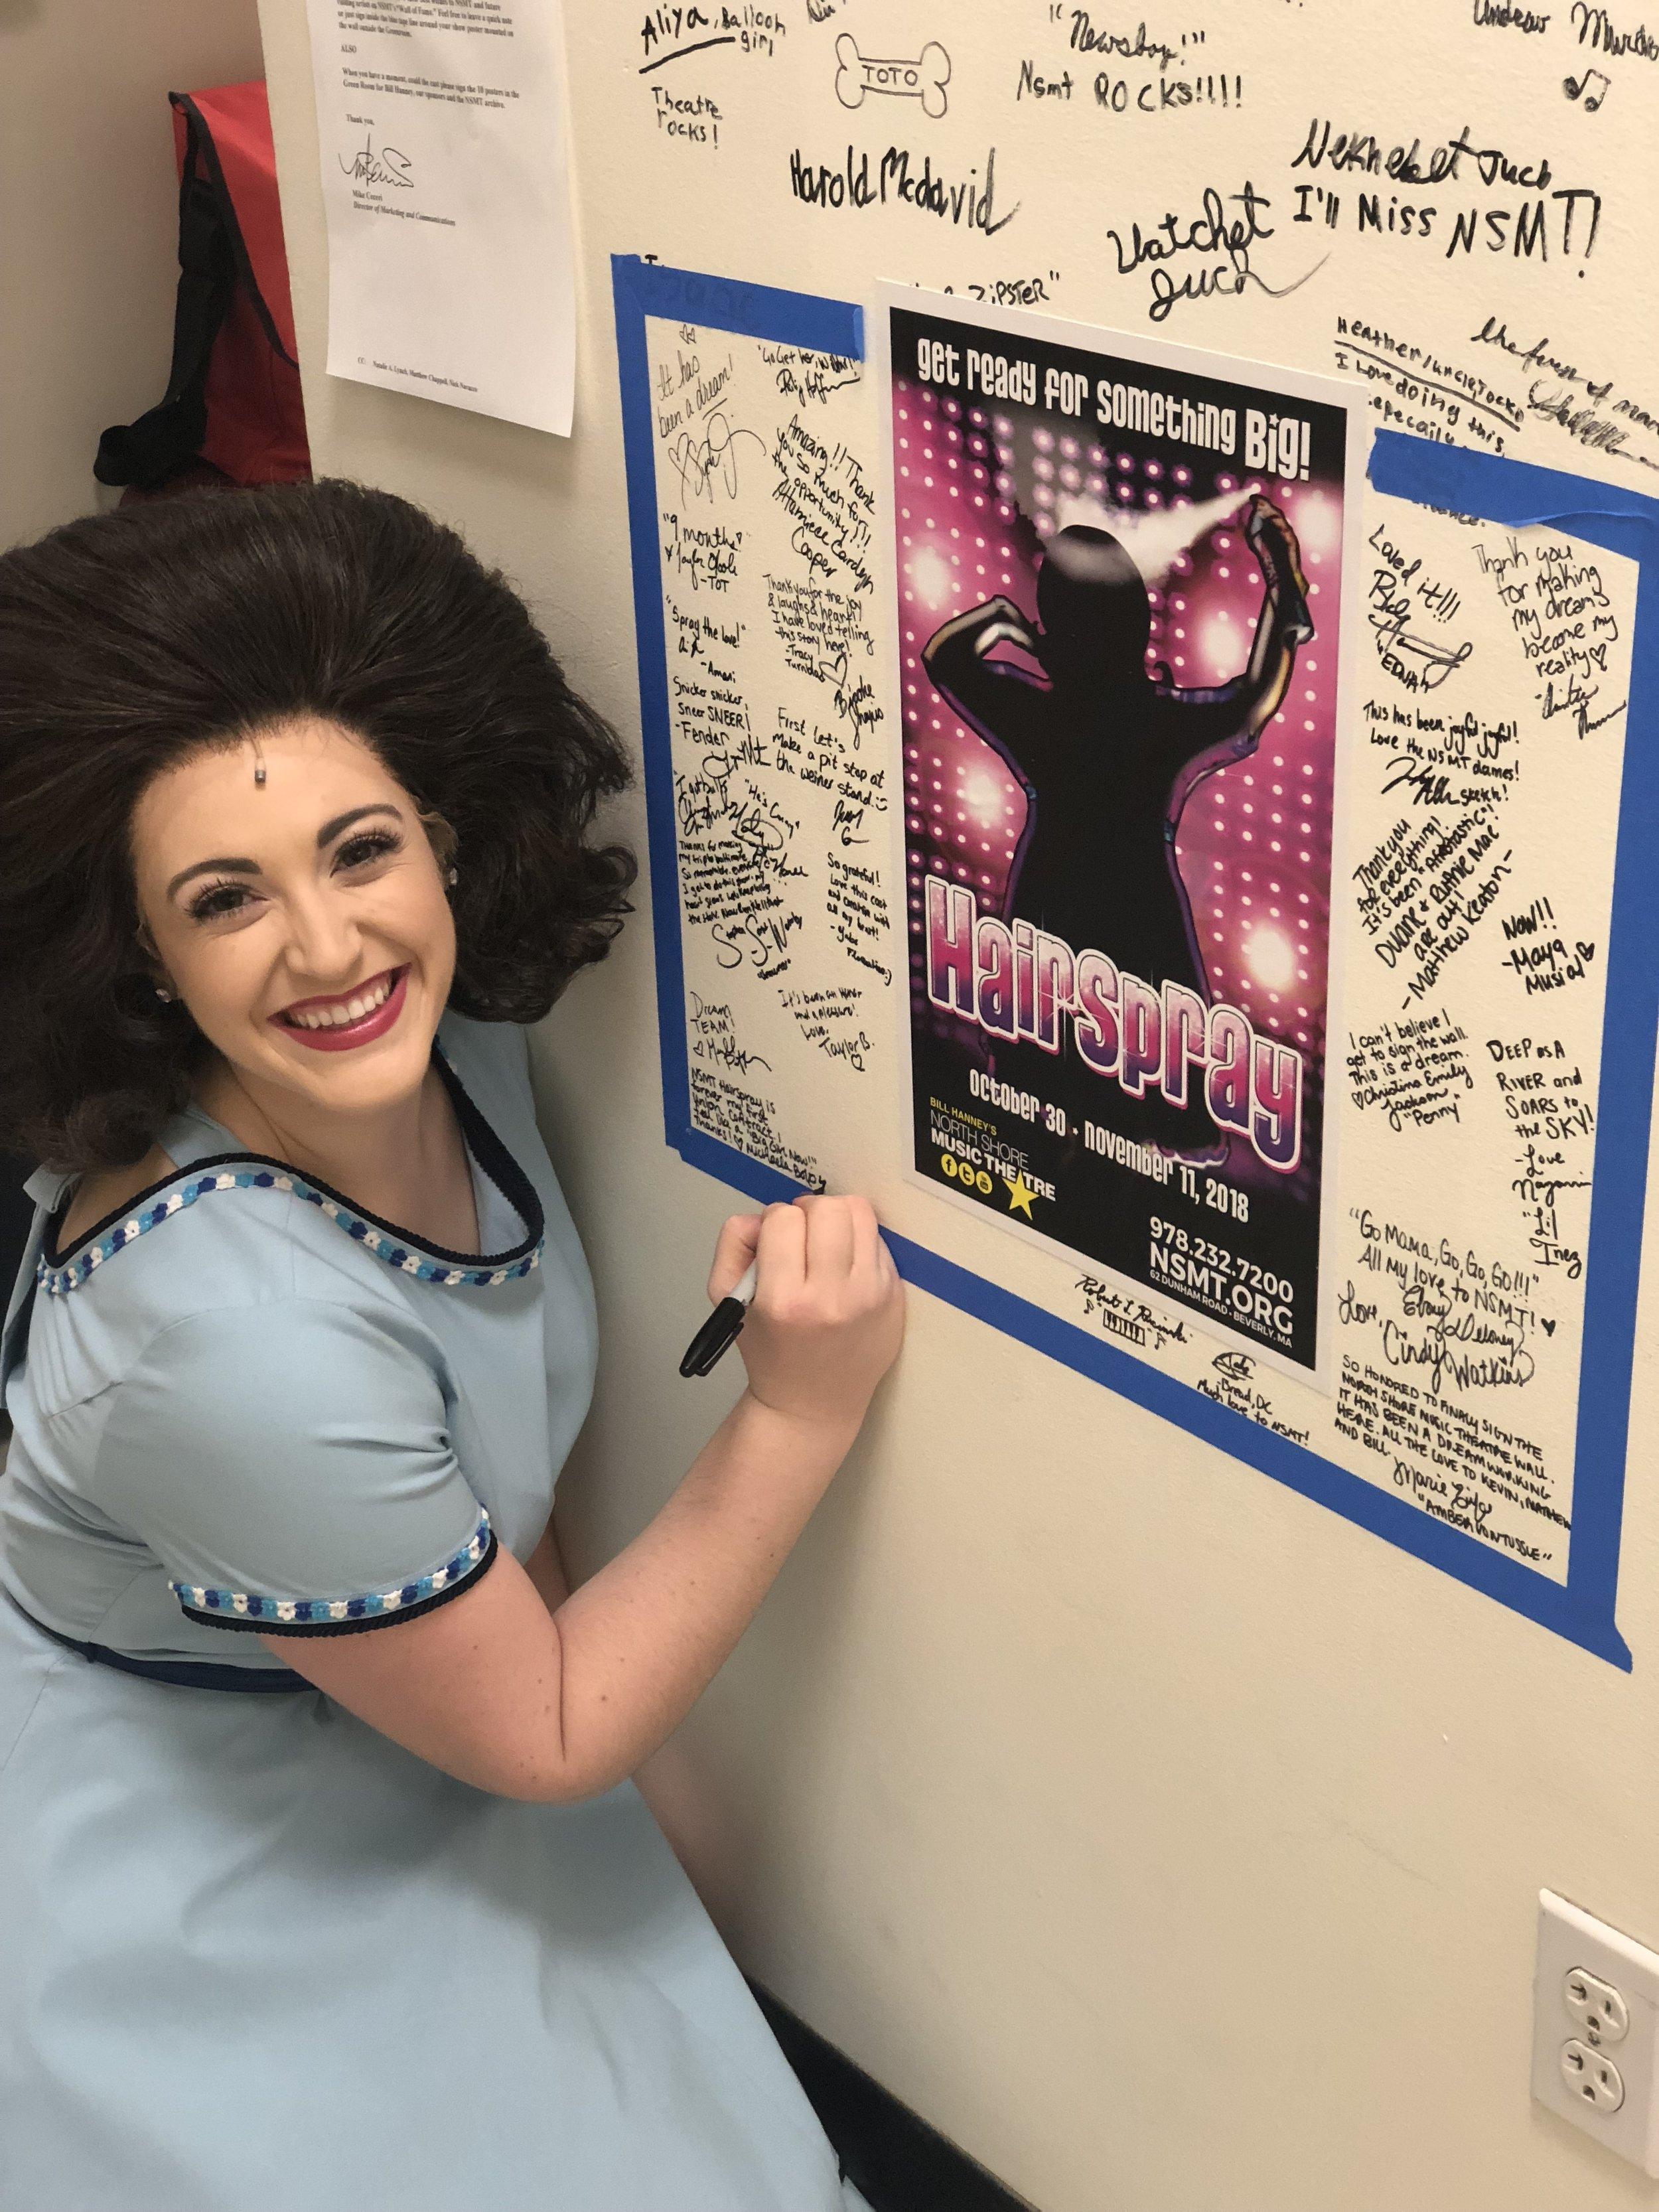 Signing the ICONIC wall backstage at North Shore Music Theatre (Nov 11, 2018)